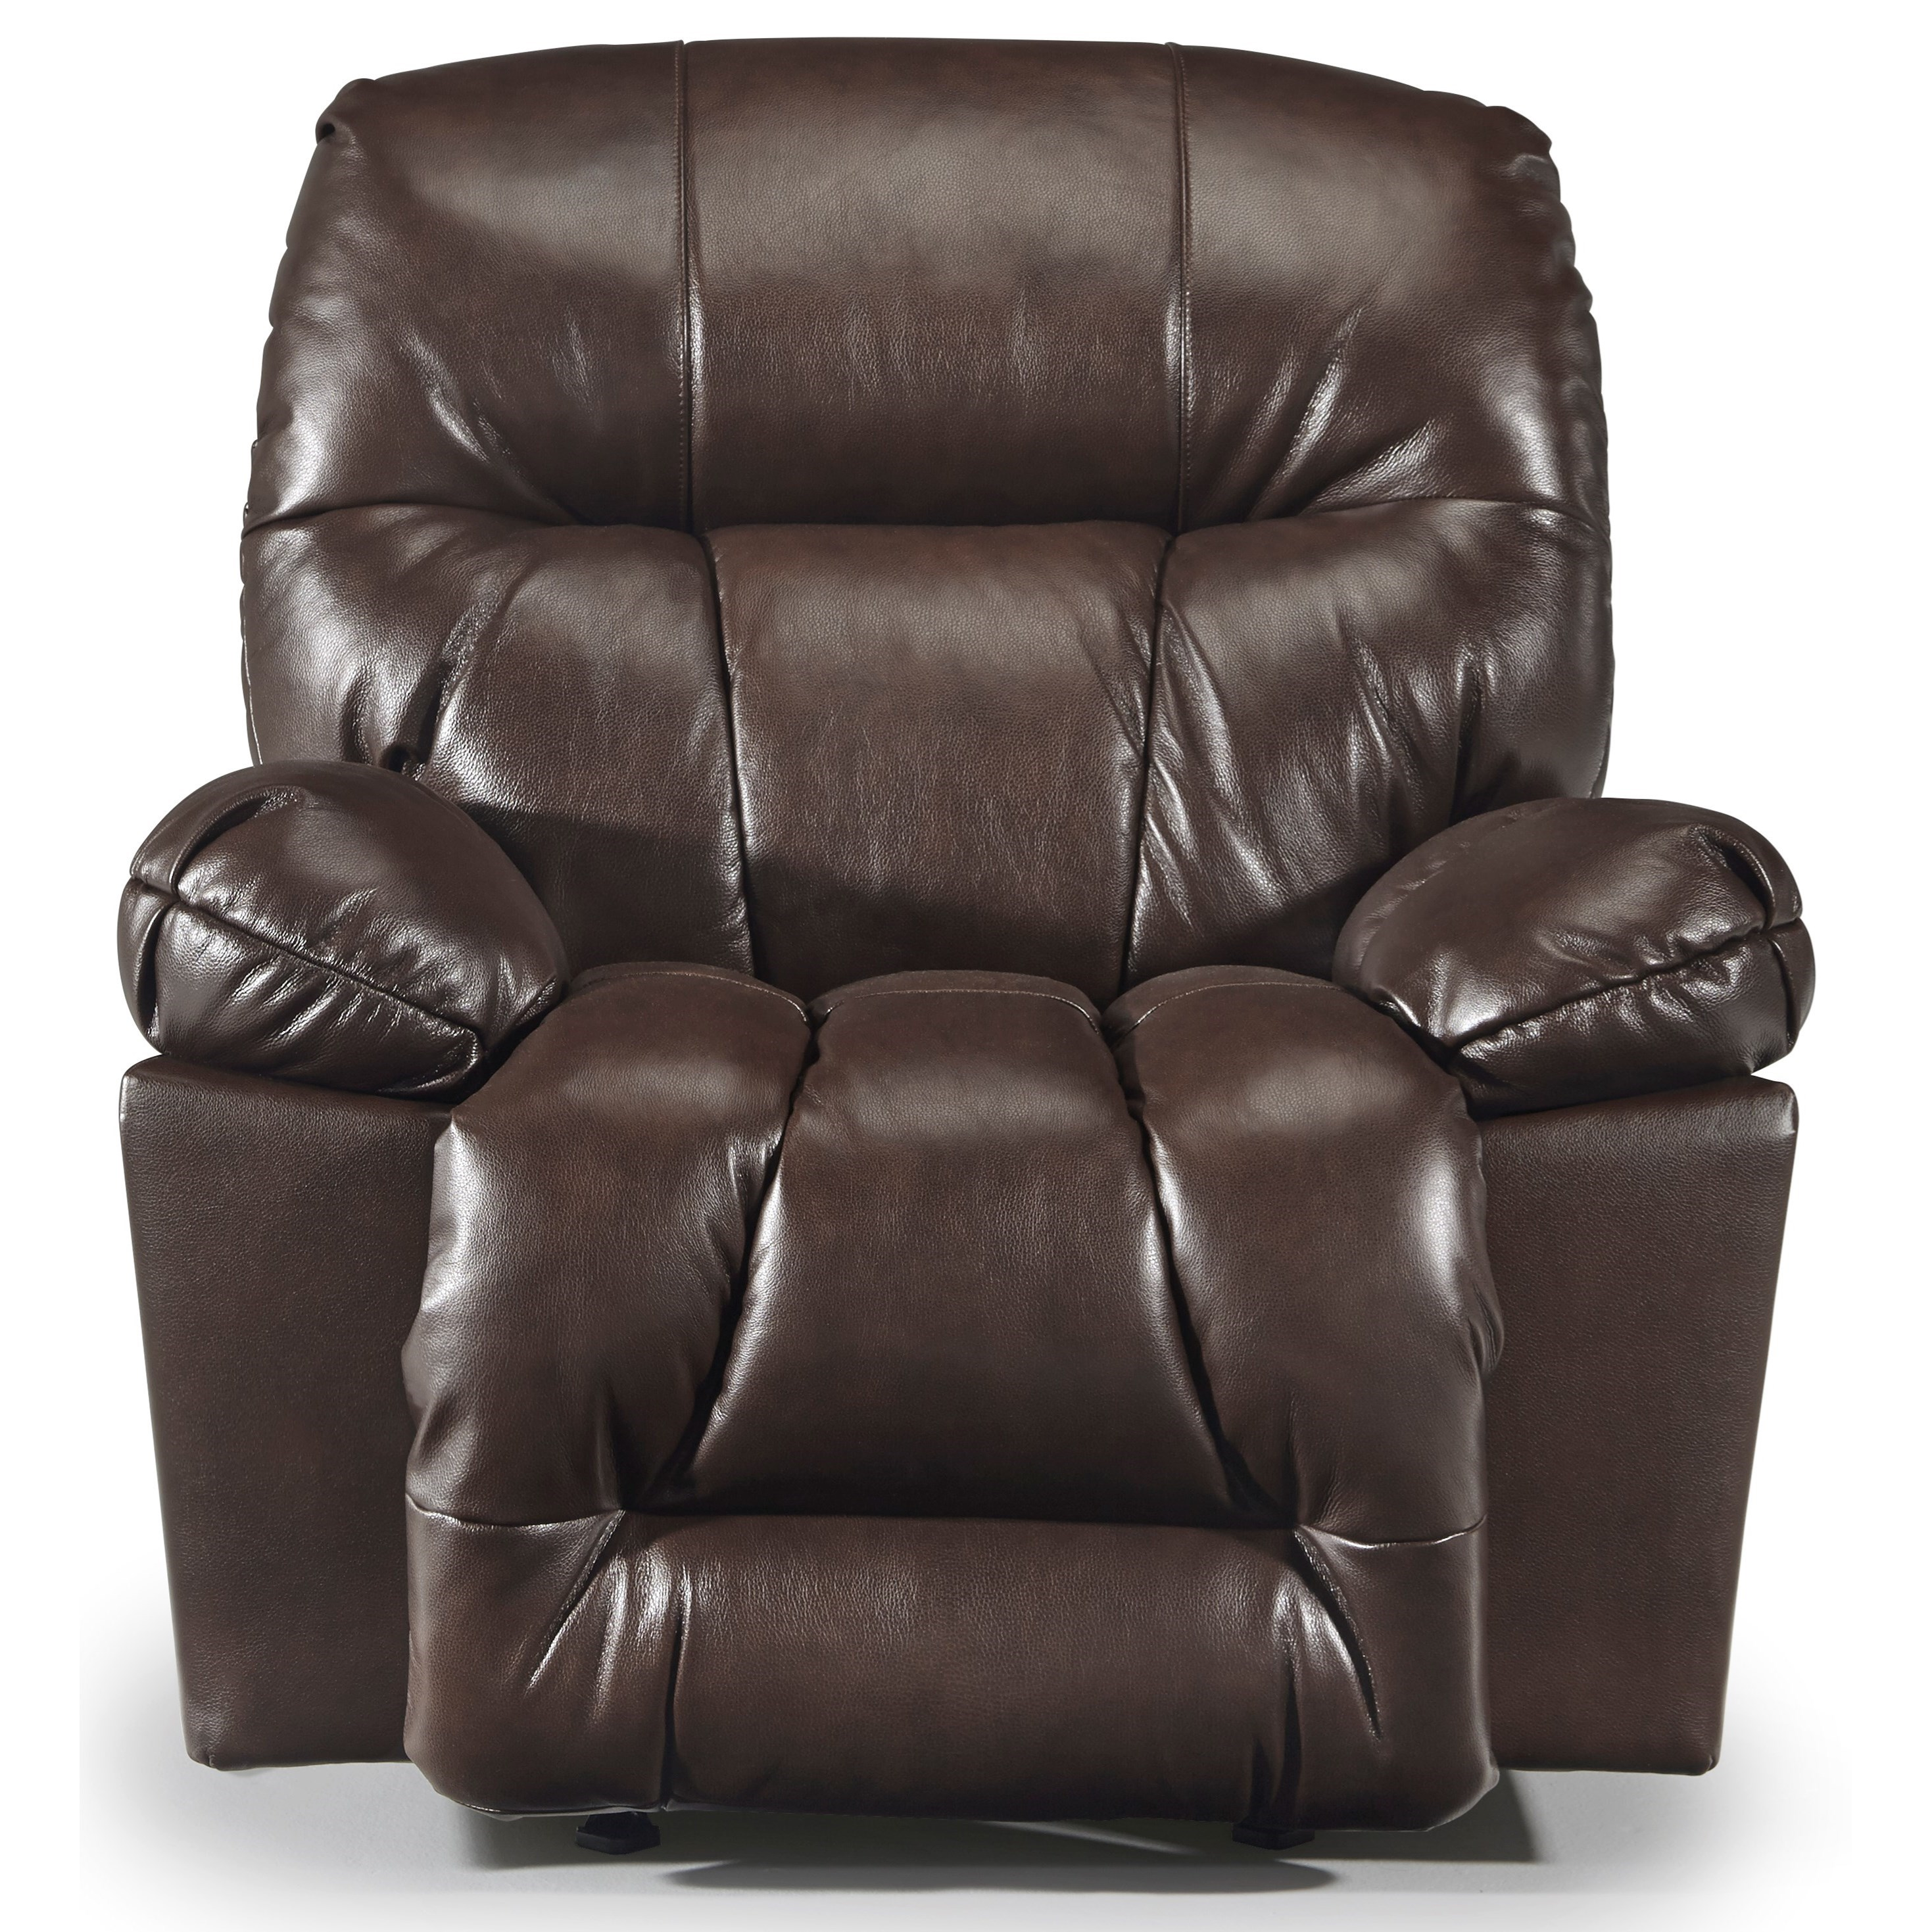 Retreat Swivel Glide Recliner by Best Home Furnishings at Baer's Furniture